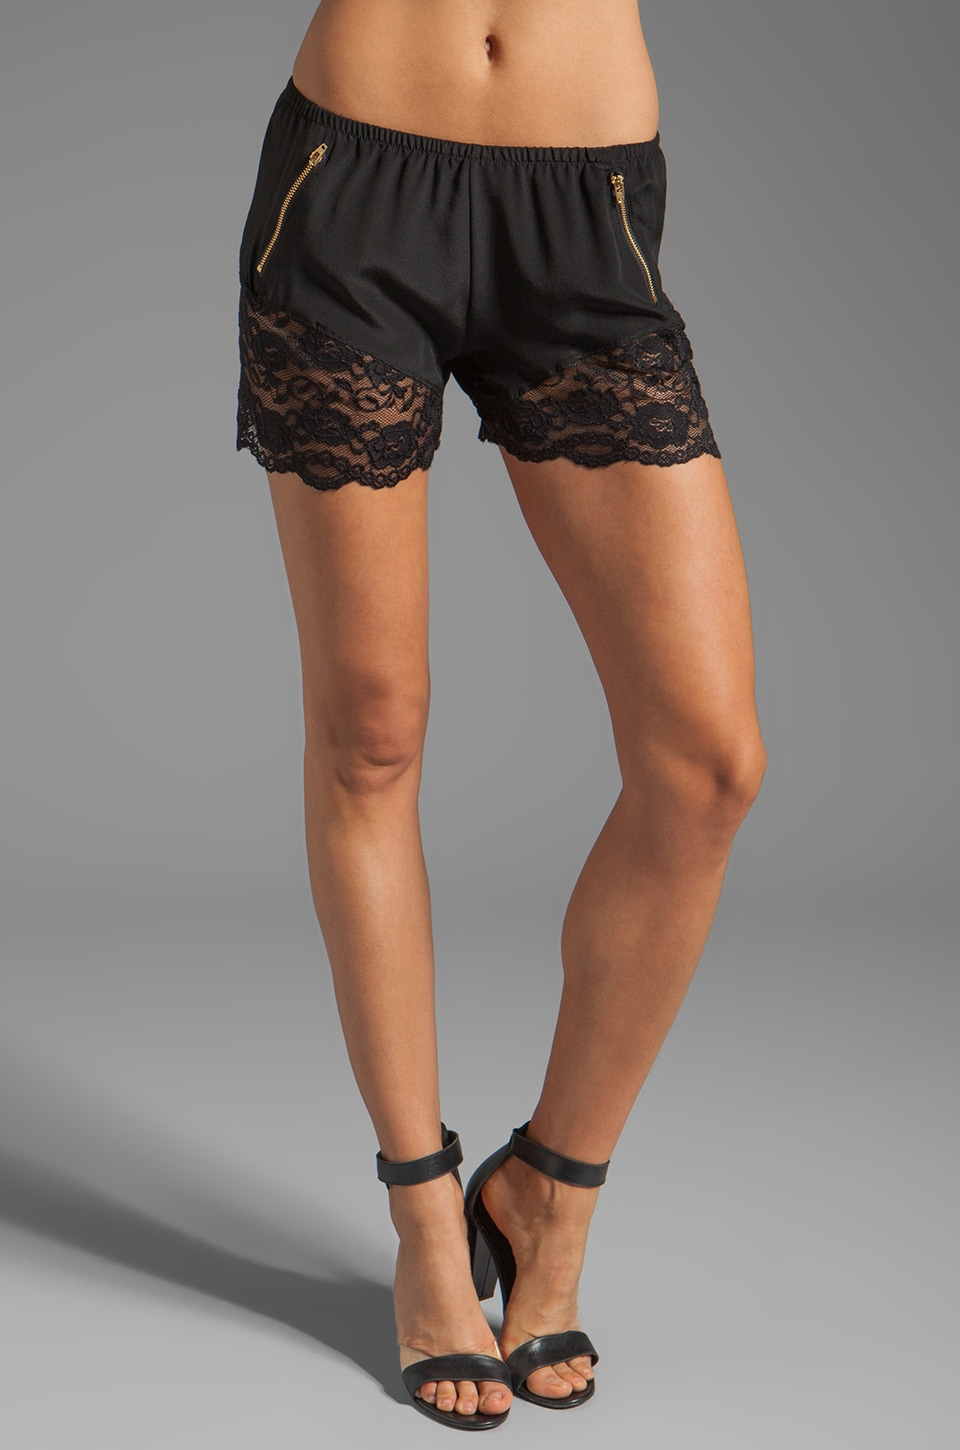 LNA Dreamer Shorts in Black